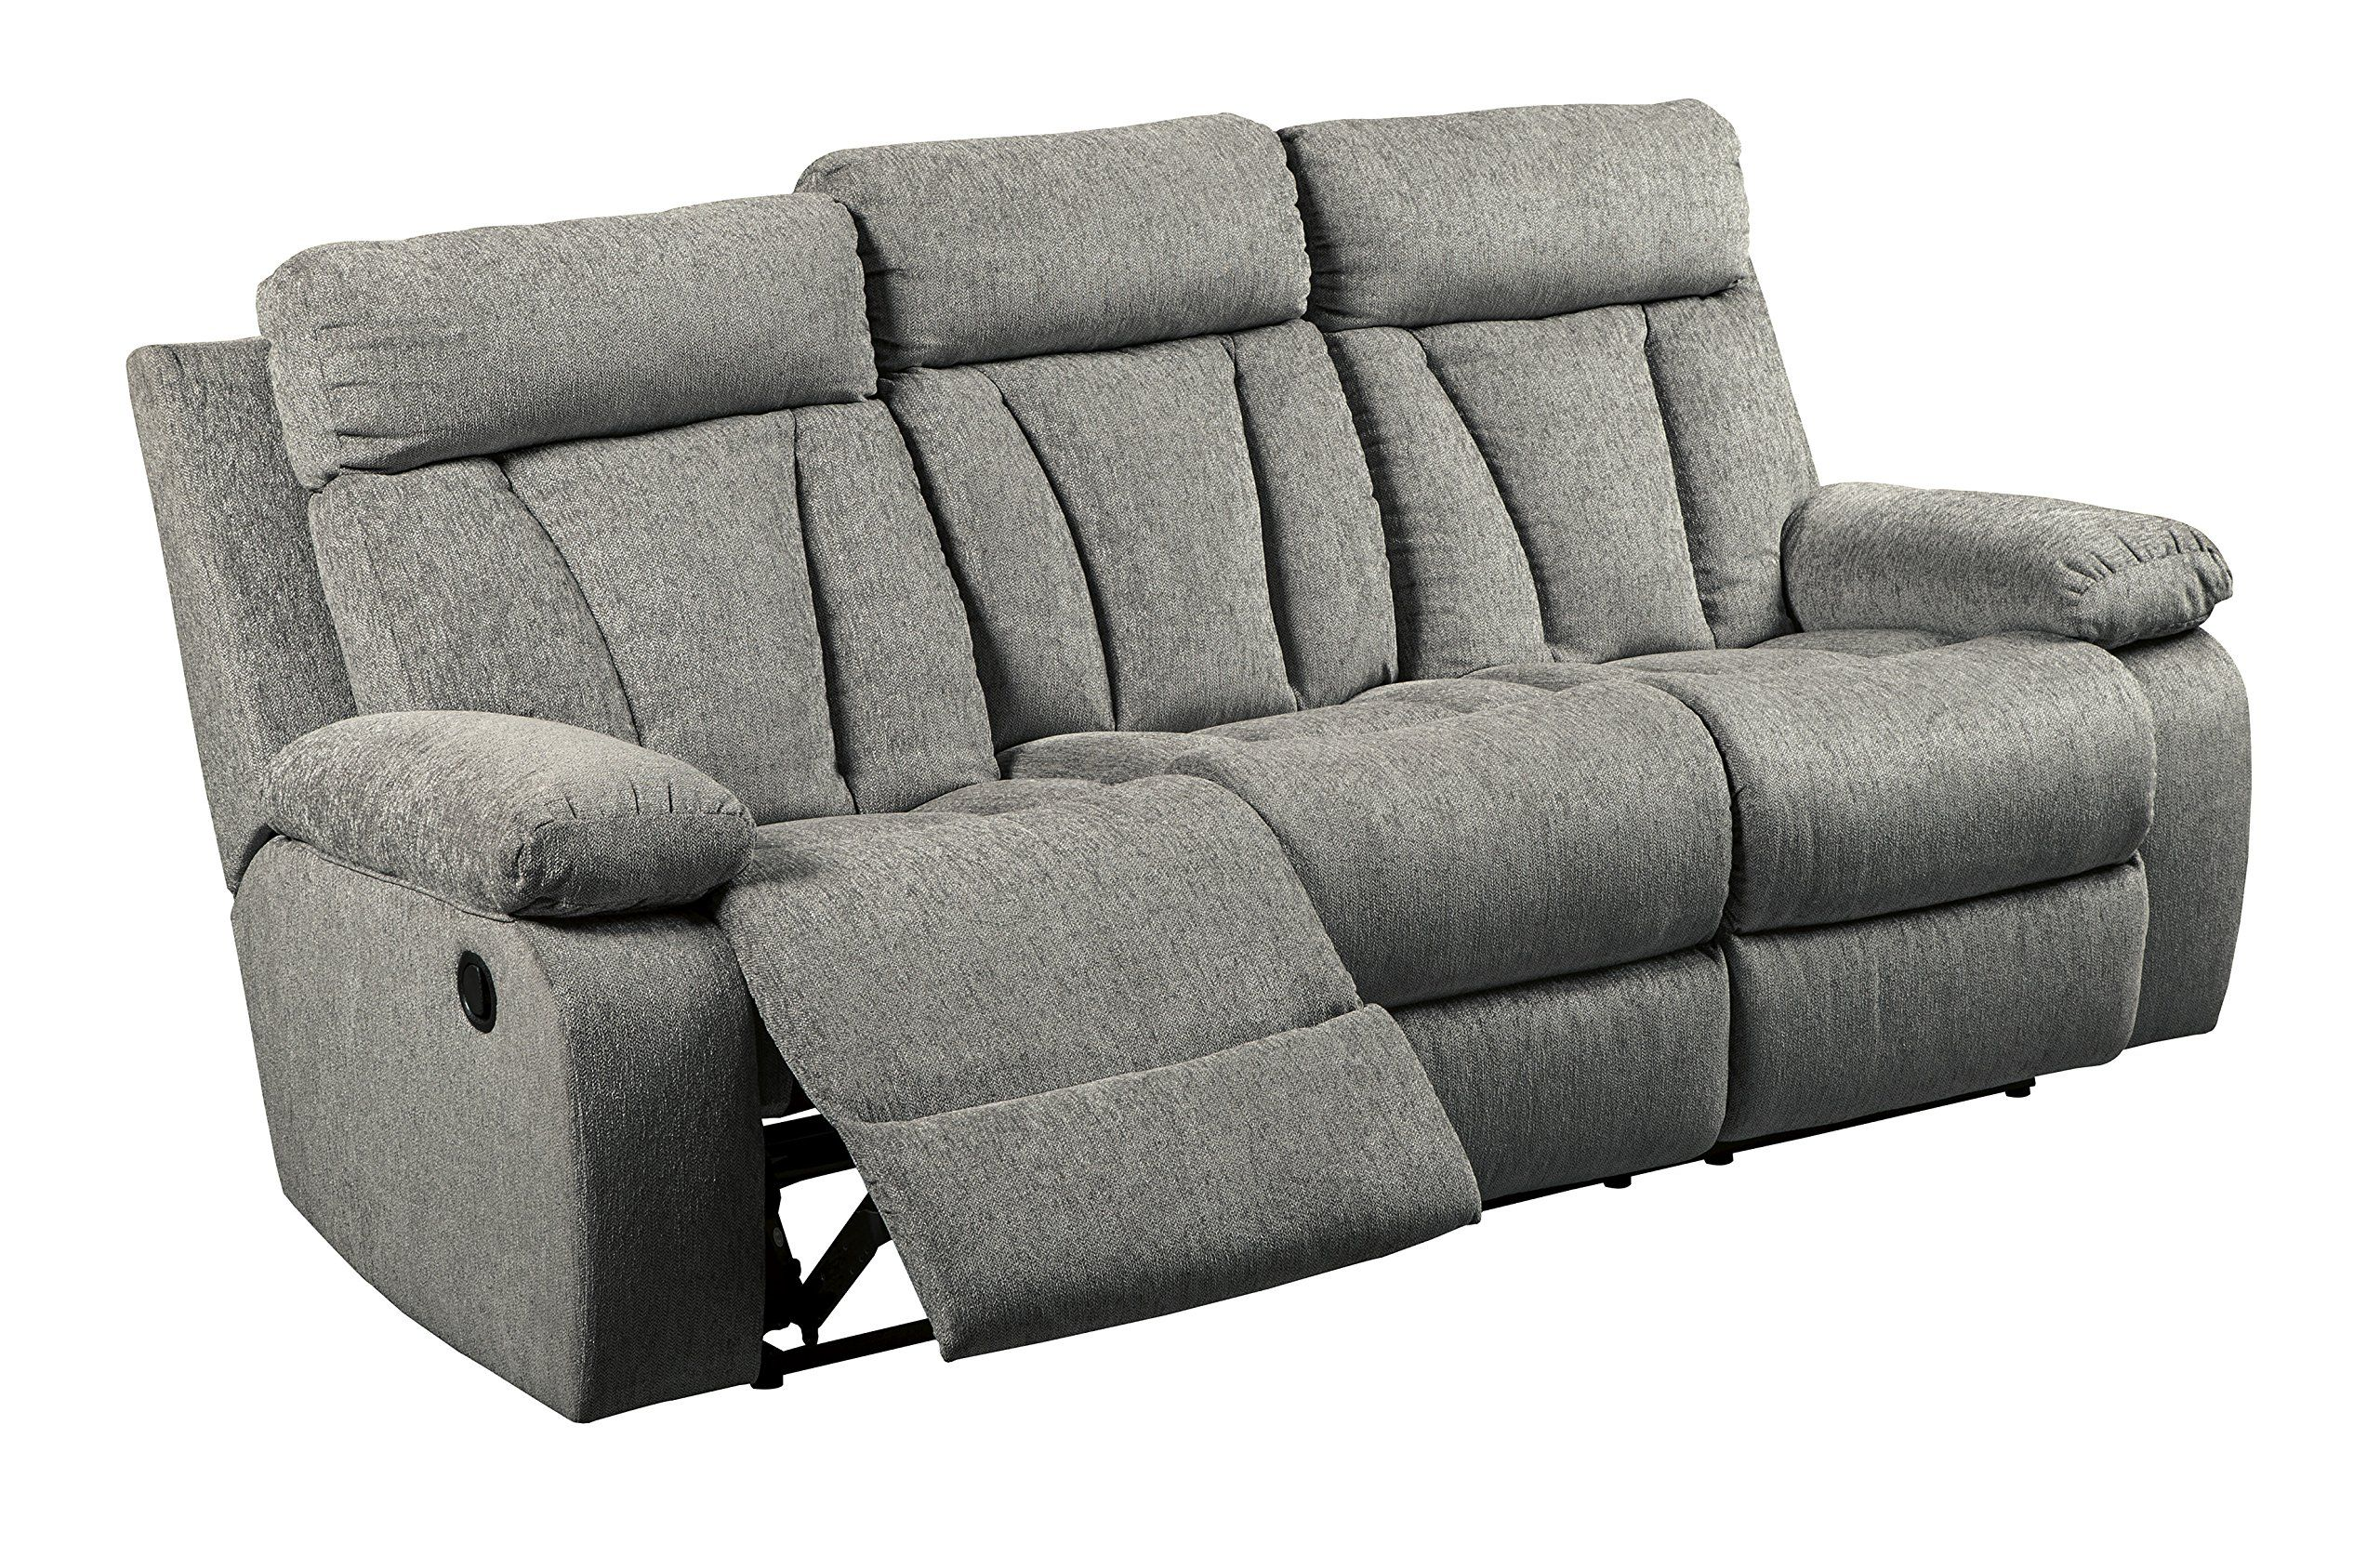 Signature Design By Ashley 7620489 Mitchiner Reclining Sofa With